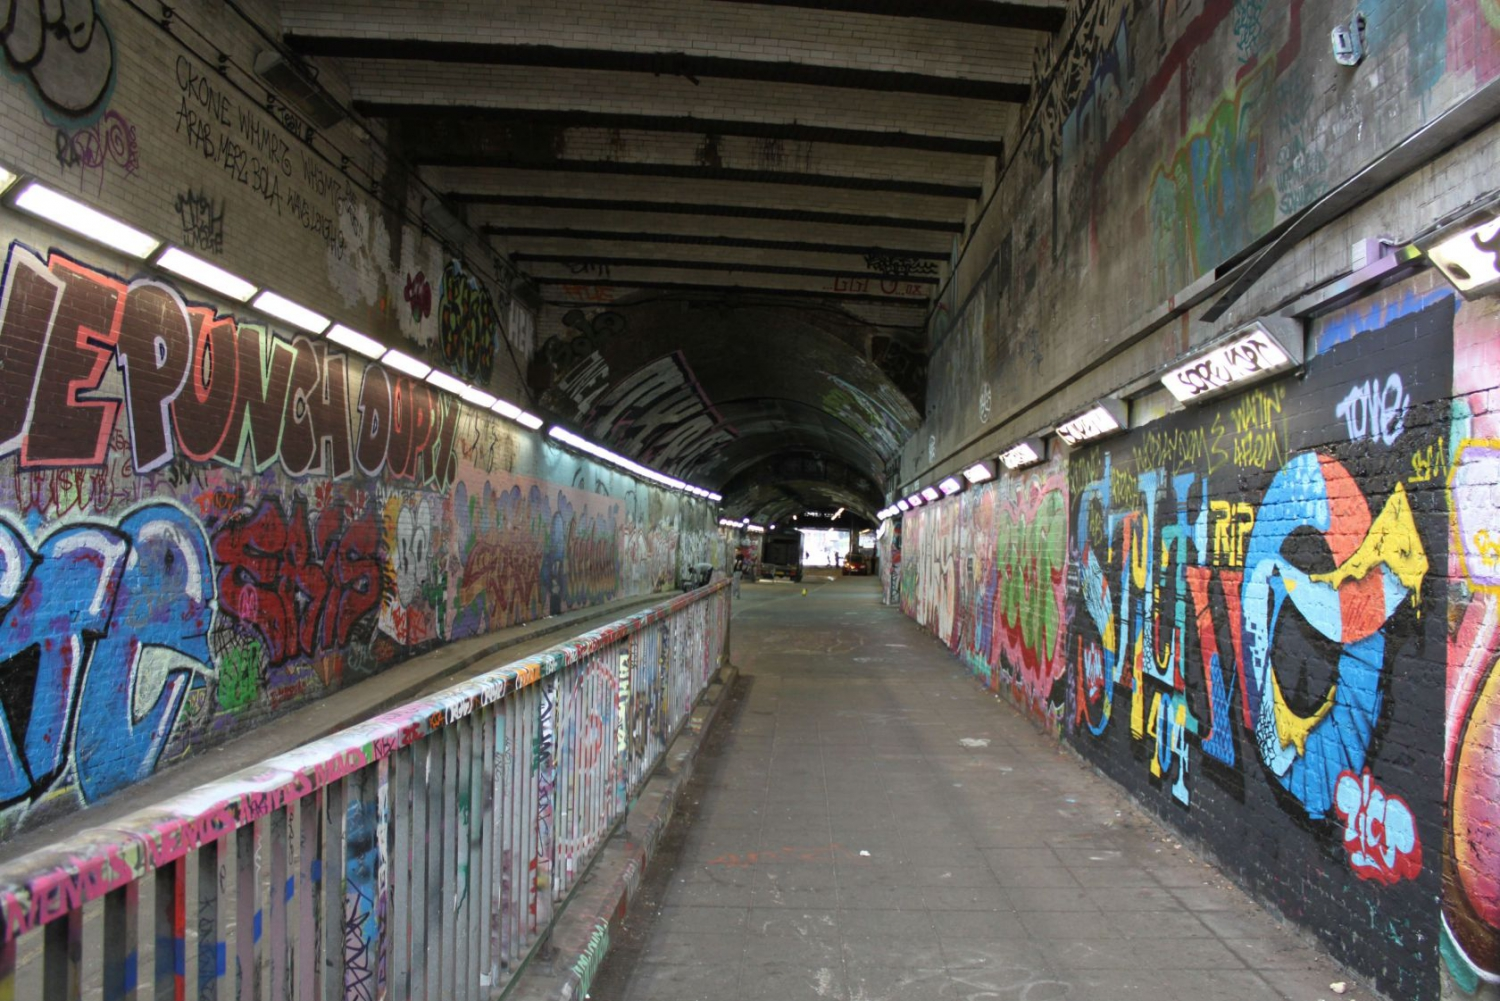 Old Vic graffiti tunnels (credit: Guy Arnold)